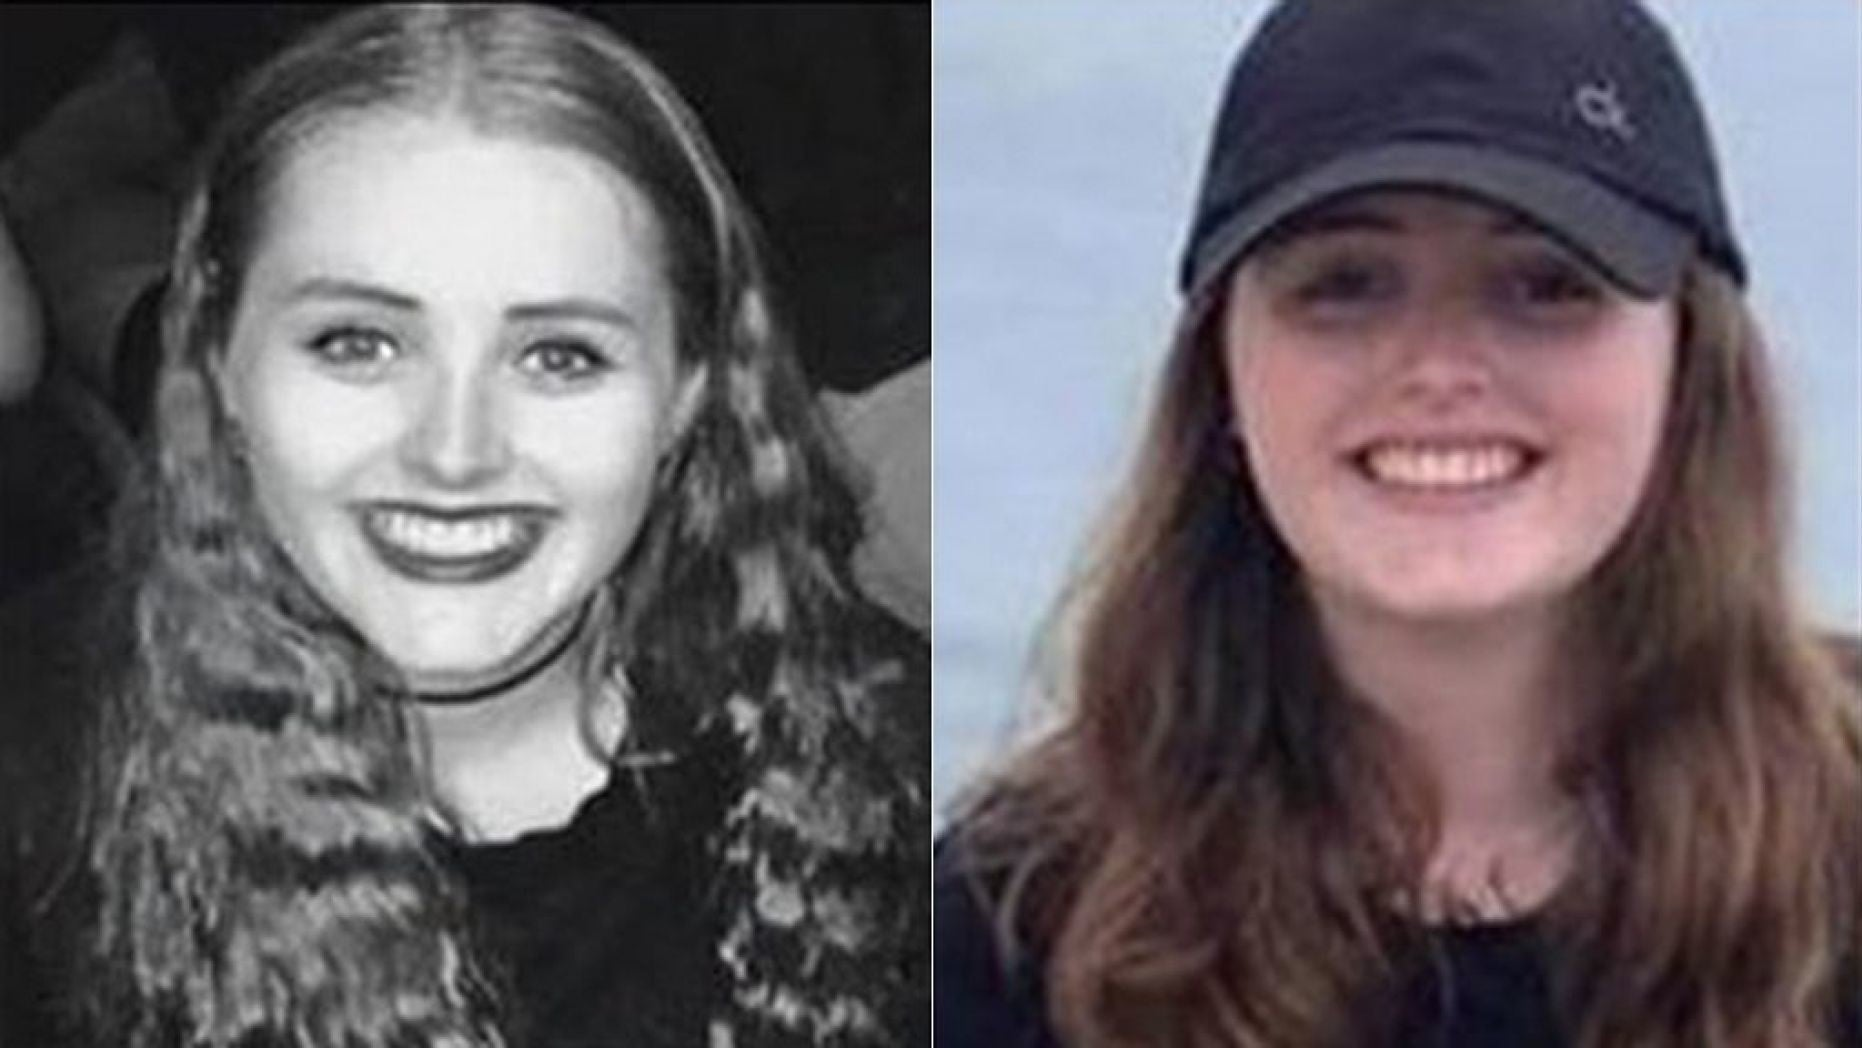 Missing British backpacker 'was murdered' say New Zealand police